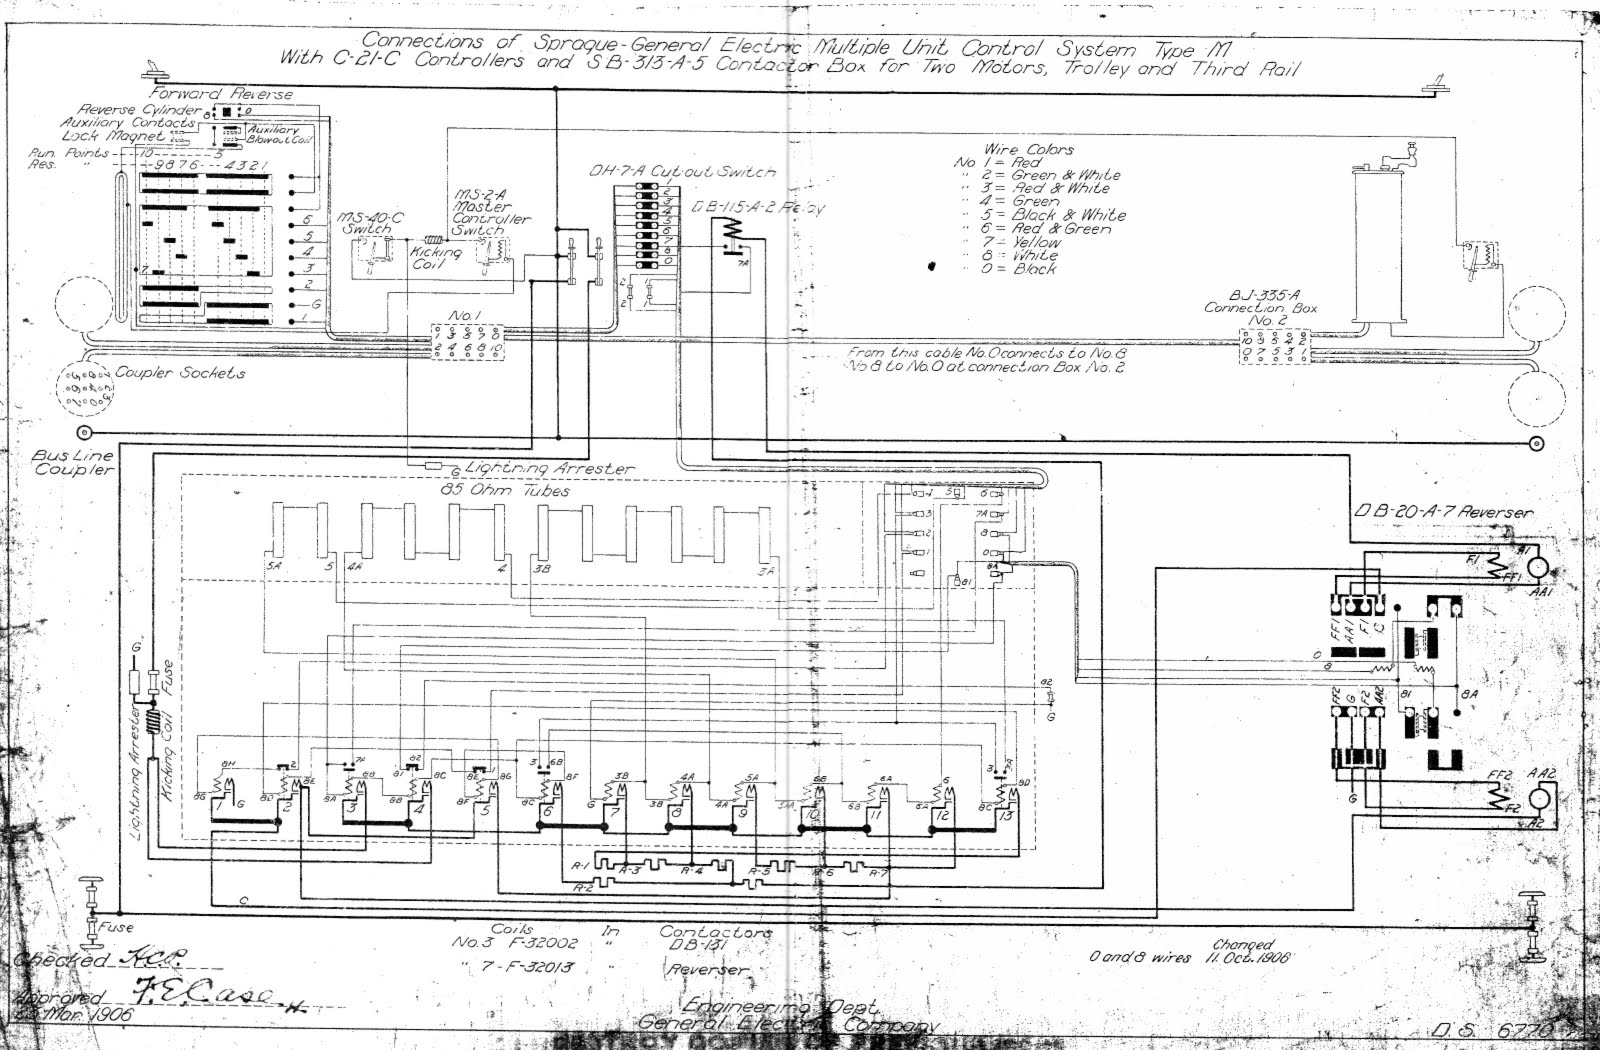 1970 chevy truck fuse box diagram with Tata on 1970 Chevelle Horn Relay Wiring Diagram moreover Painless Wiring Diagram For 1980 Chevy Truck in addition Tata besides Installing Of Honeywell Wi Fi Programmable Thermostat likewise 1970 Vw Turn Signal Wiring Diagram.